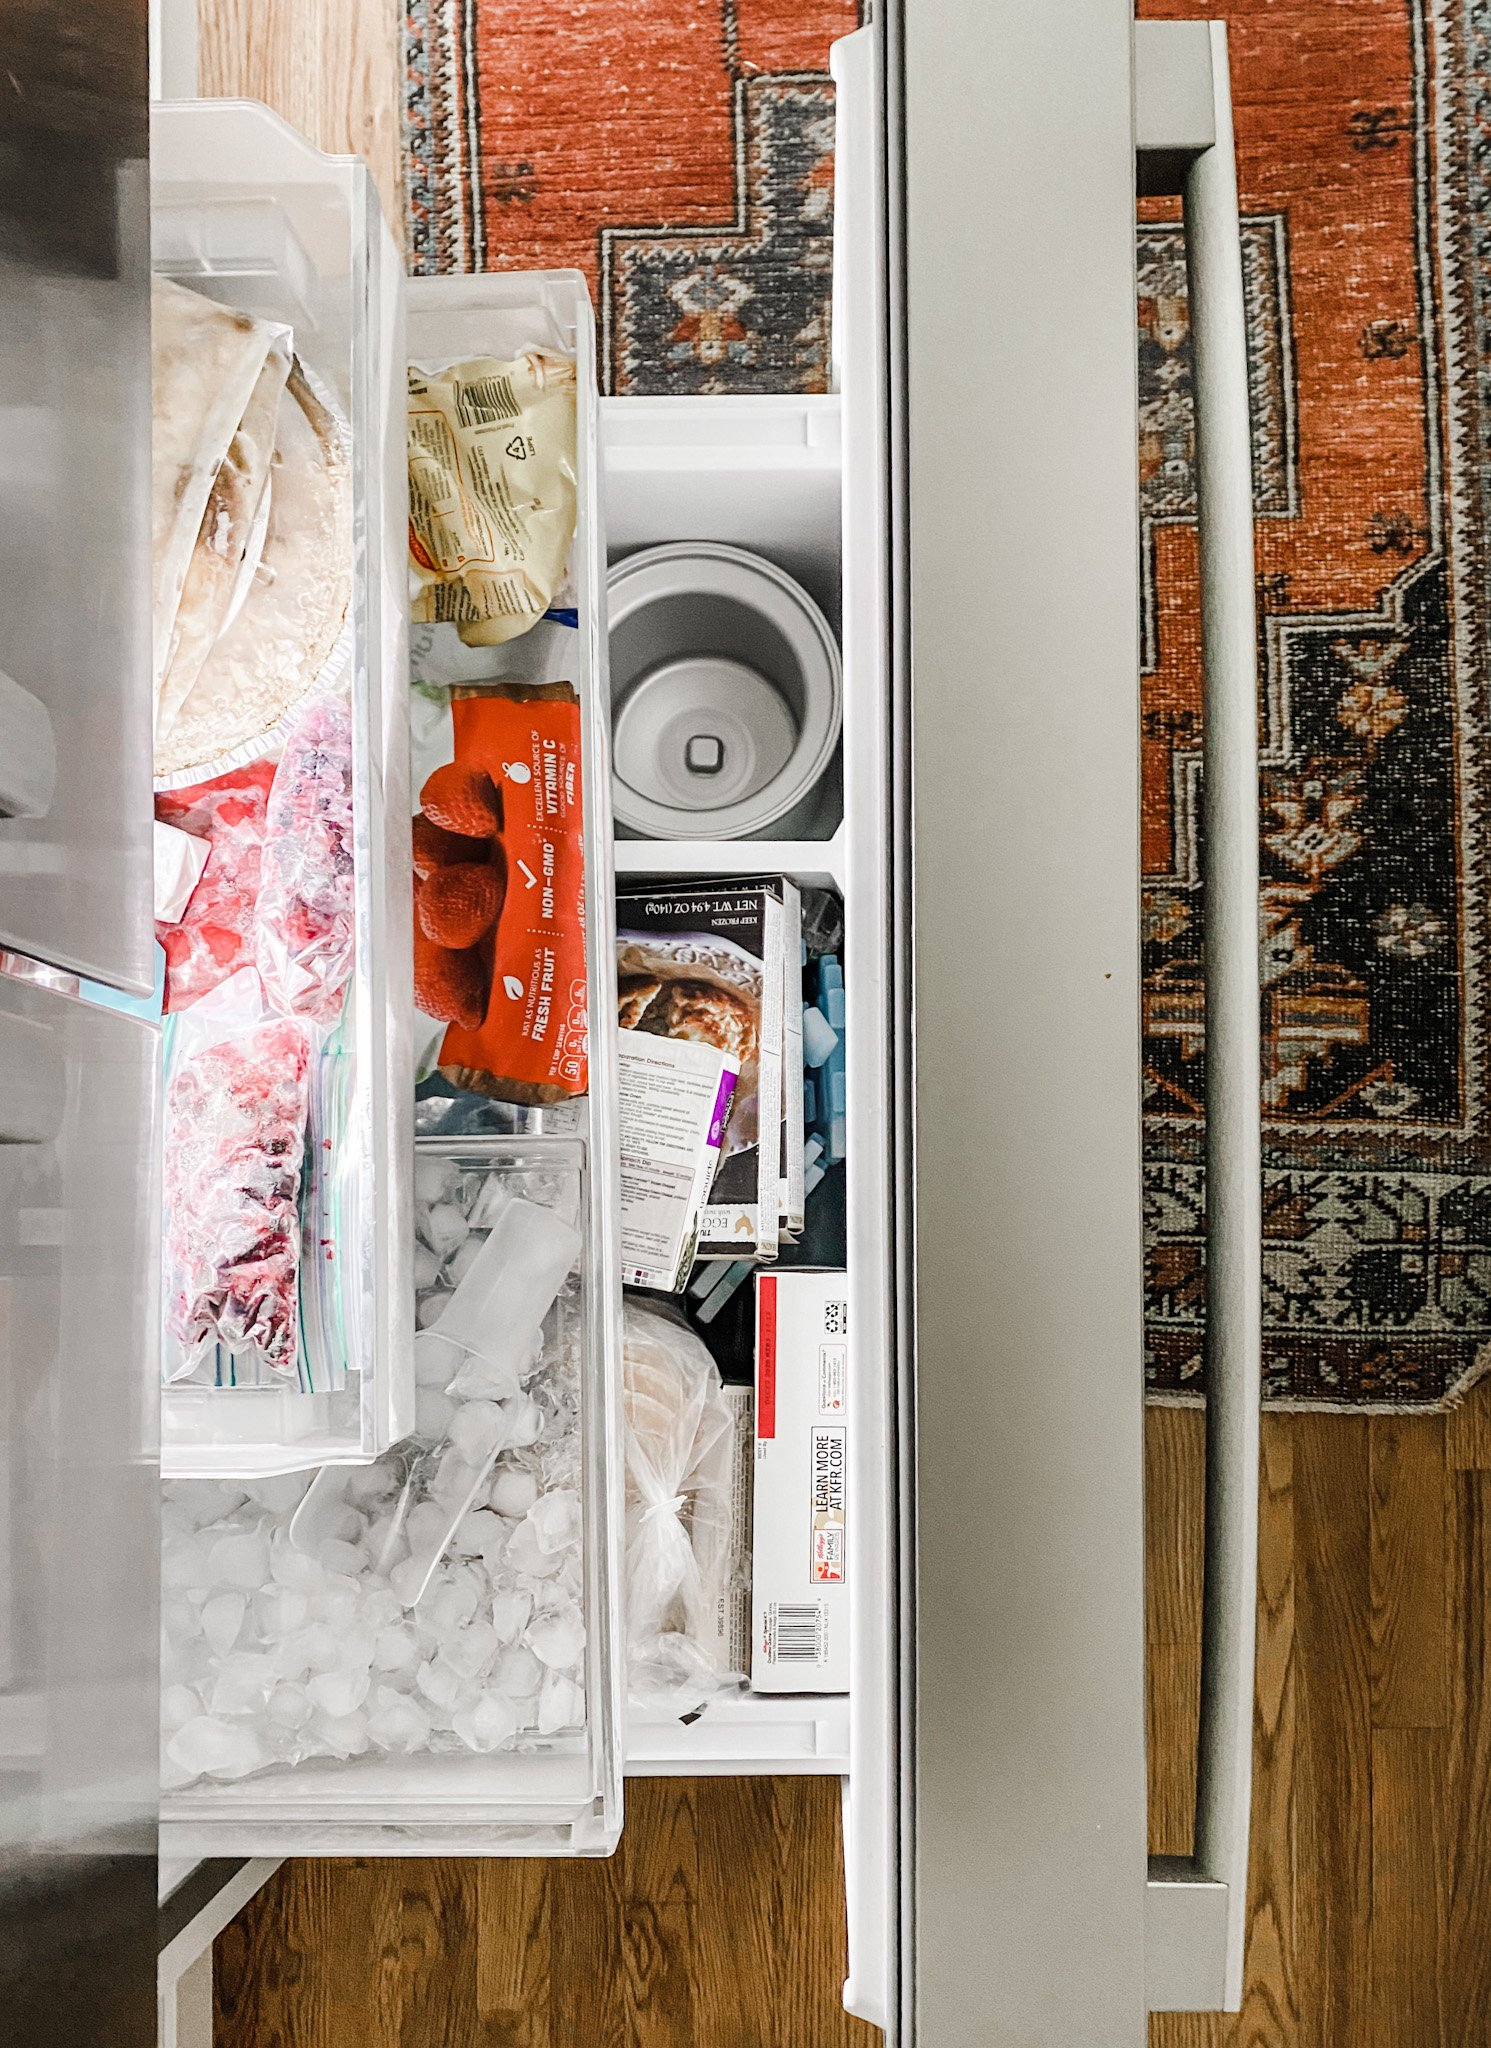 freezer drawer with 3 shelves and an ice maker